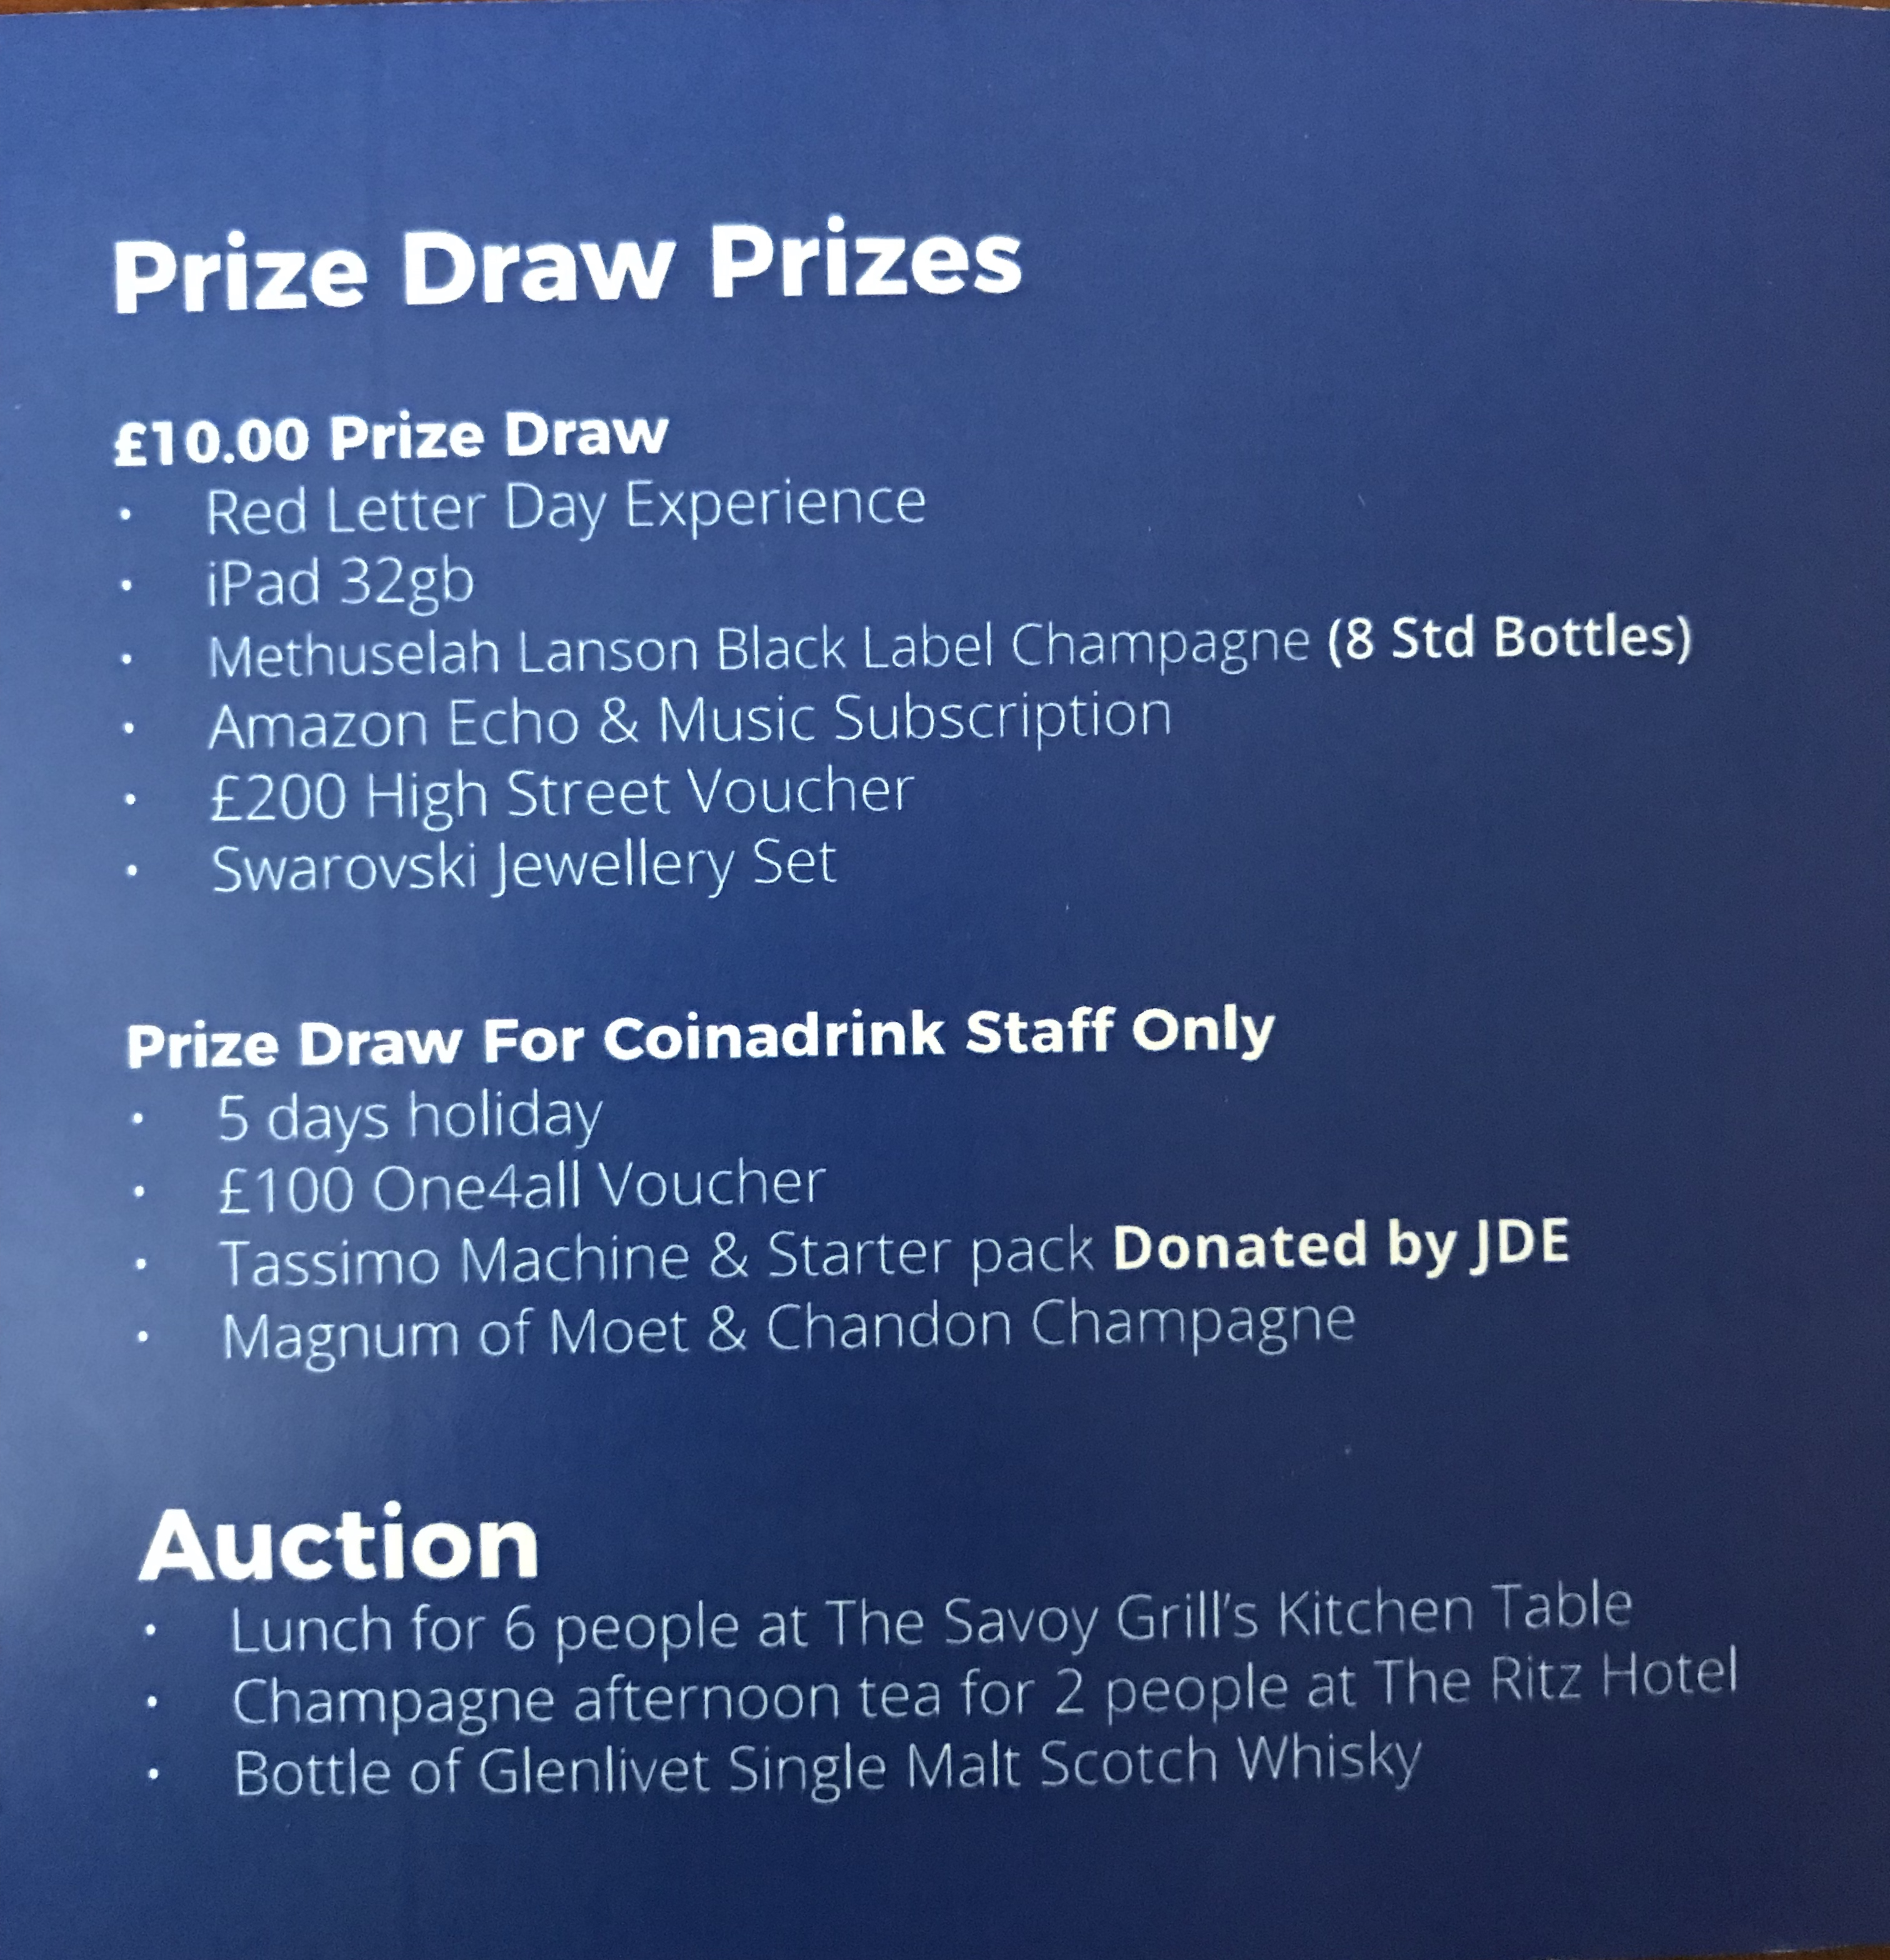 Turns Out Coinadrink Do Know How To Throw A Party Voucher 3 2gb The Selection Of Prizes On Night